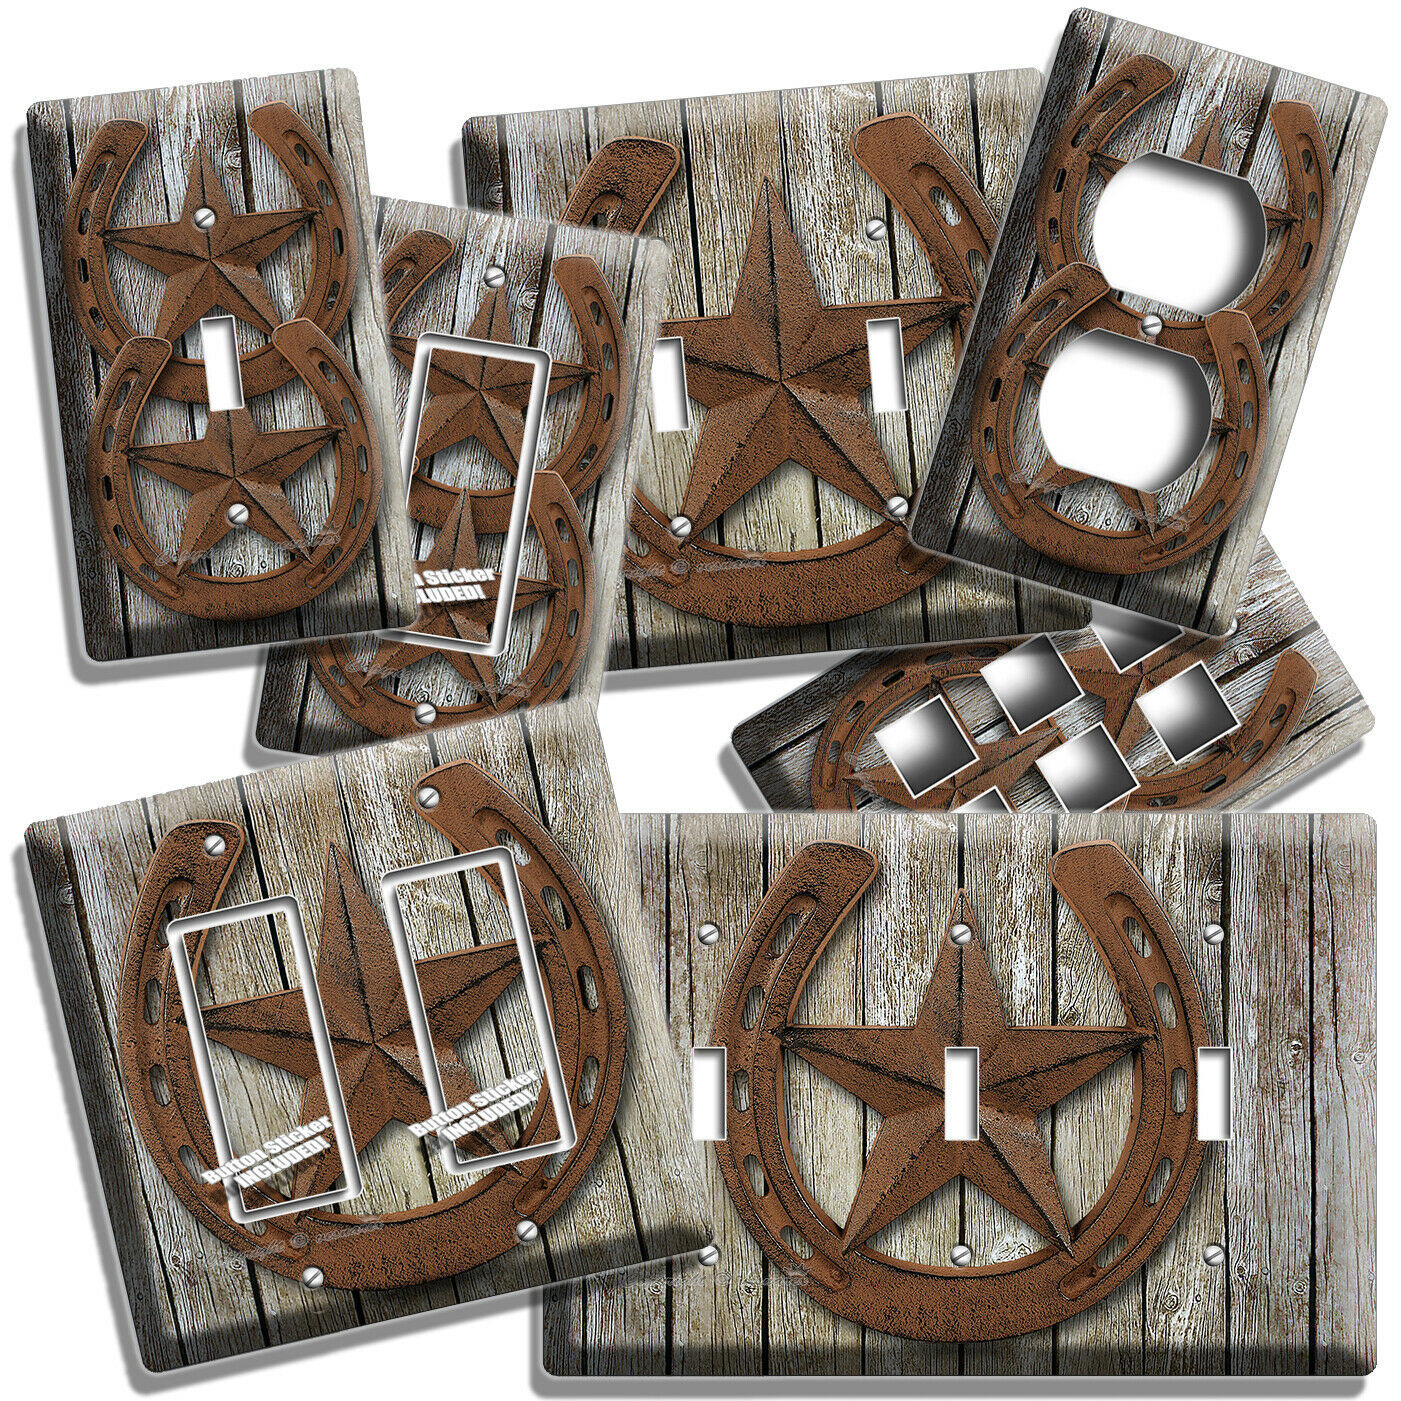 Primary image for RUSTIC WESTERN COWBOY LONE STAR HORSESHOE LIGHT SWITCH OUTLET WALL PLATES DECOR